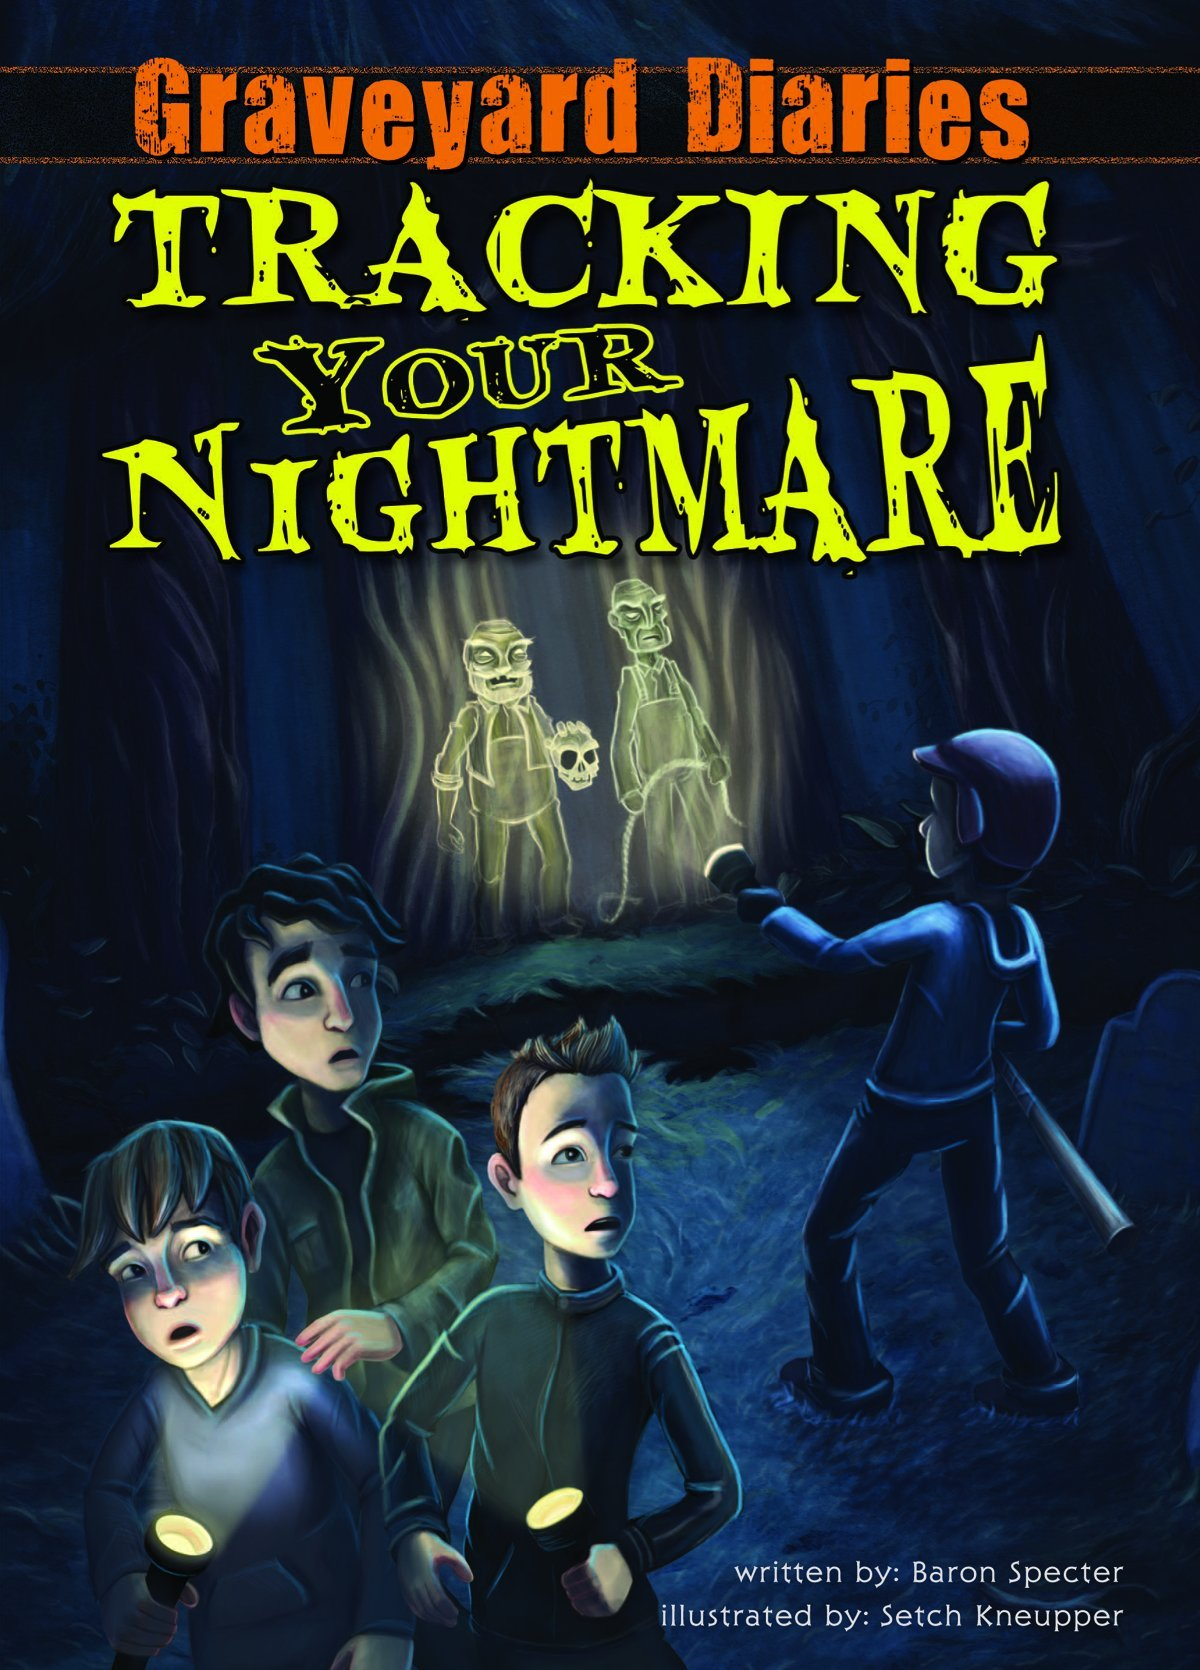 Tracking Your Nightmare: Book 1 (graveyard Diaries): Baron Spector, Setch  Kneupper: 9781616418984: Amazon: Books